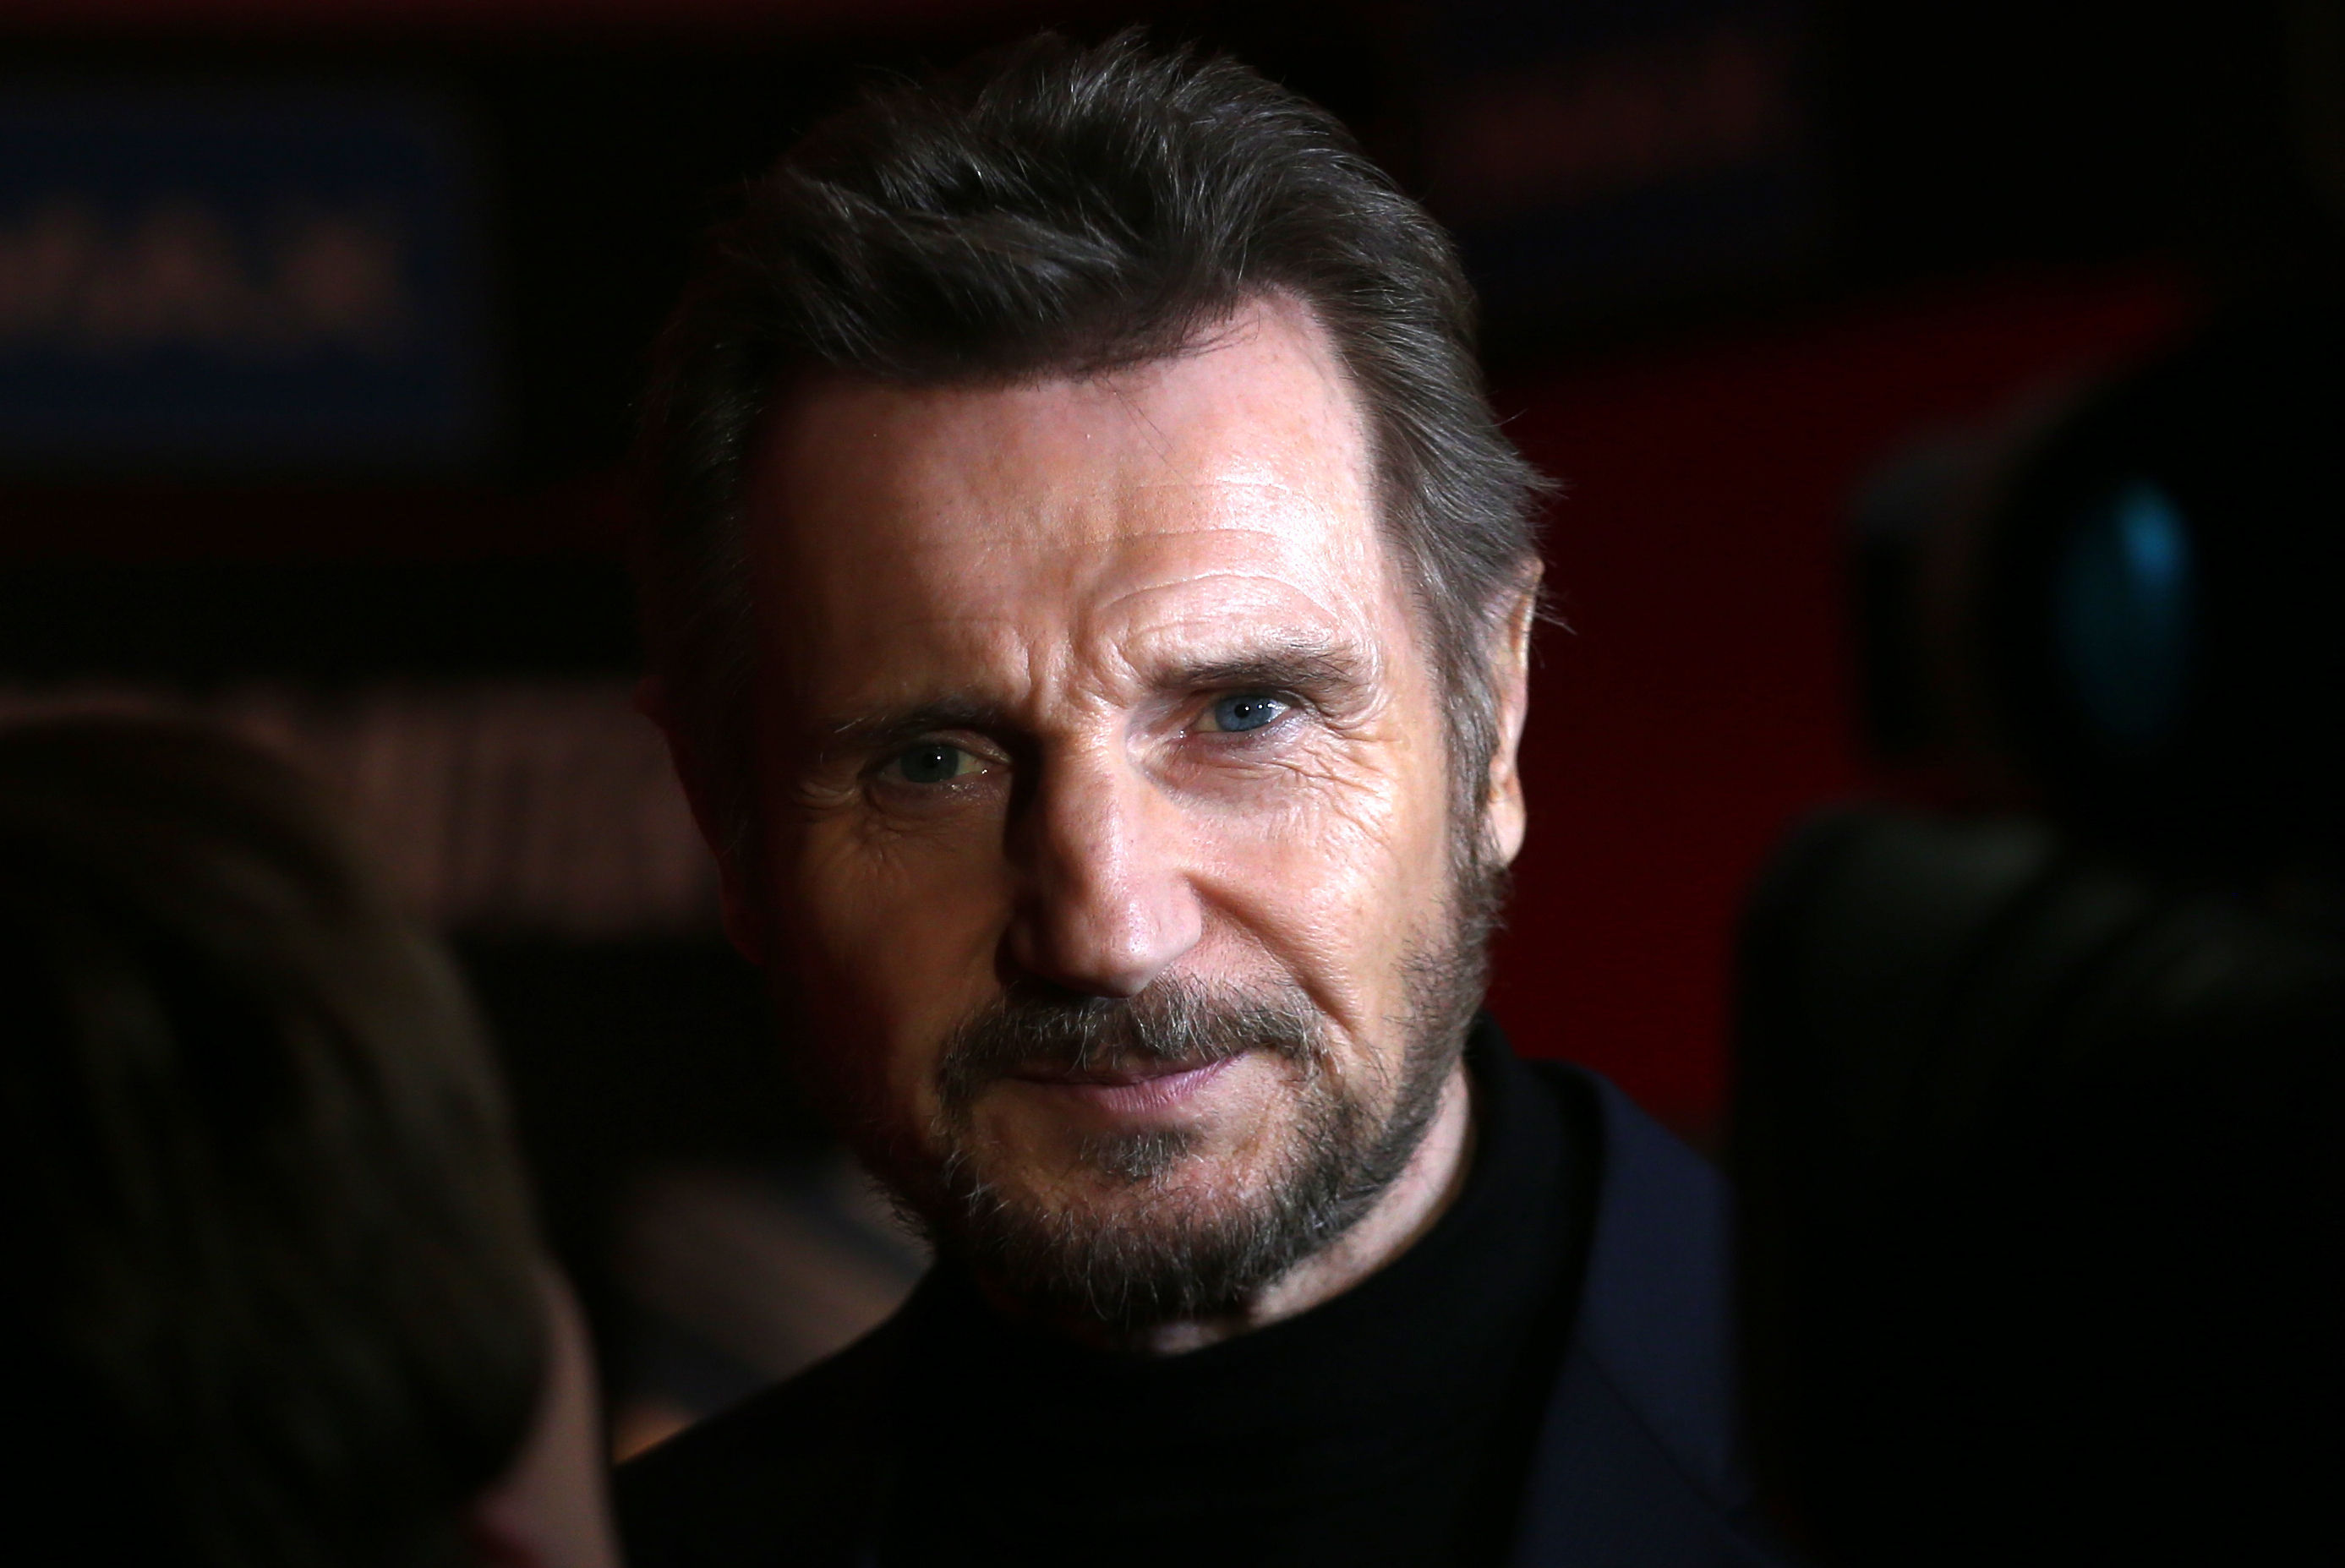 Liam Neeson's latest film takes $10m on opening weekend despite race storm